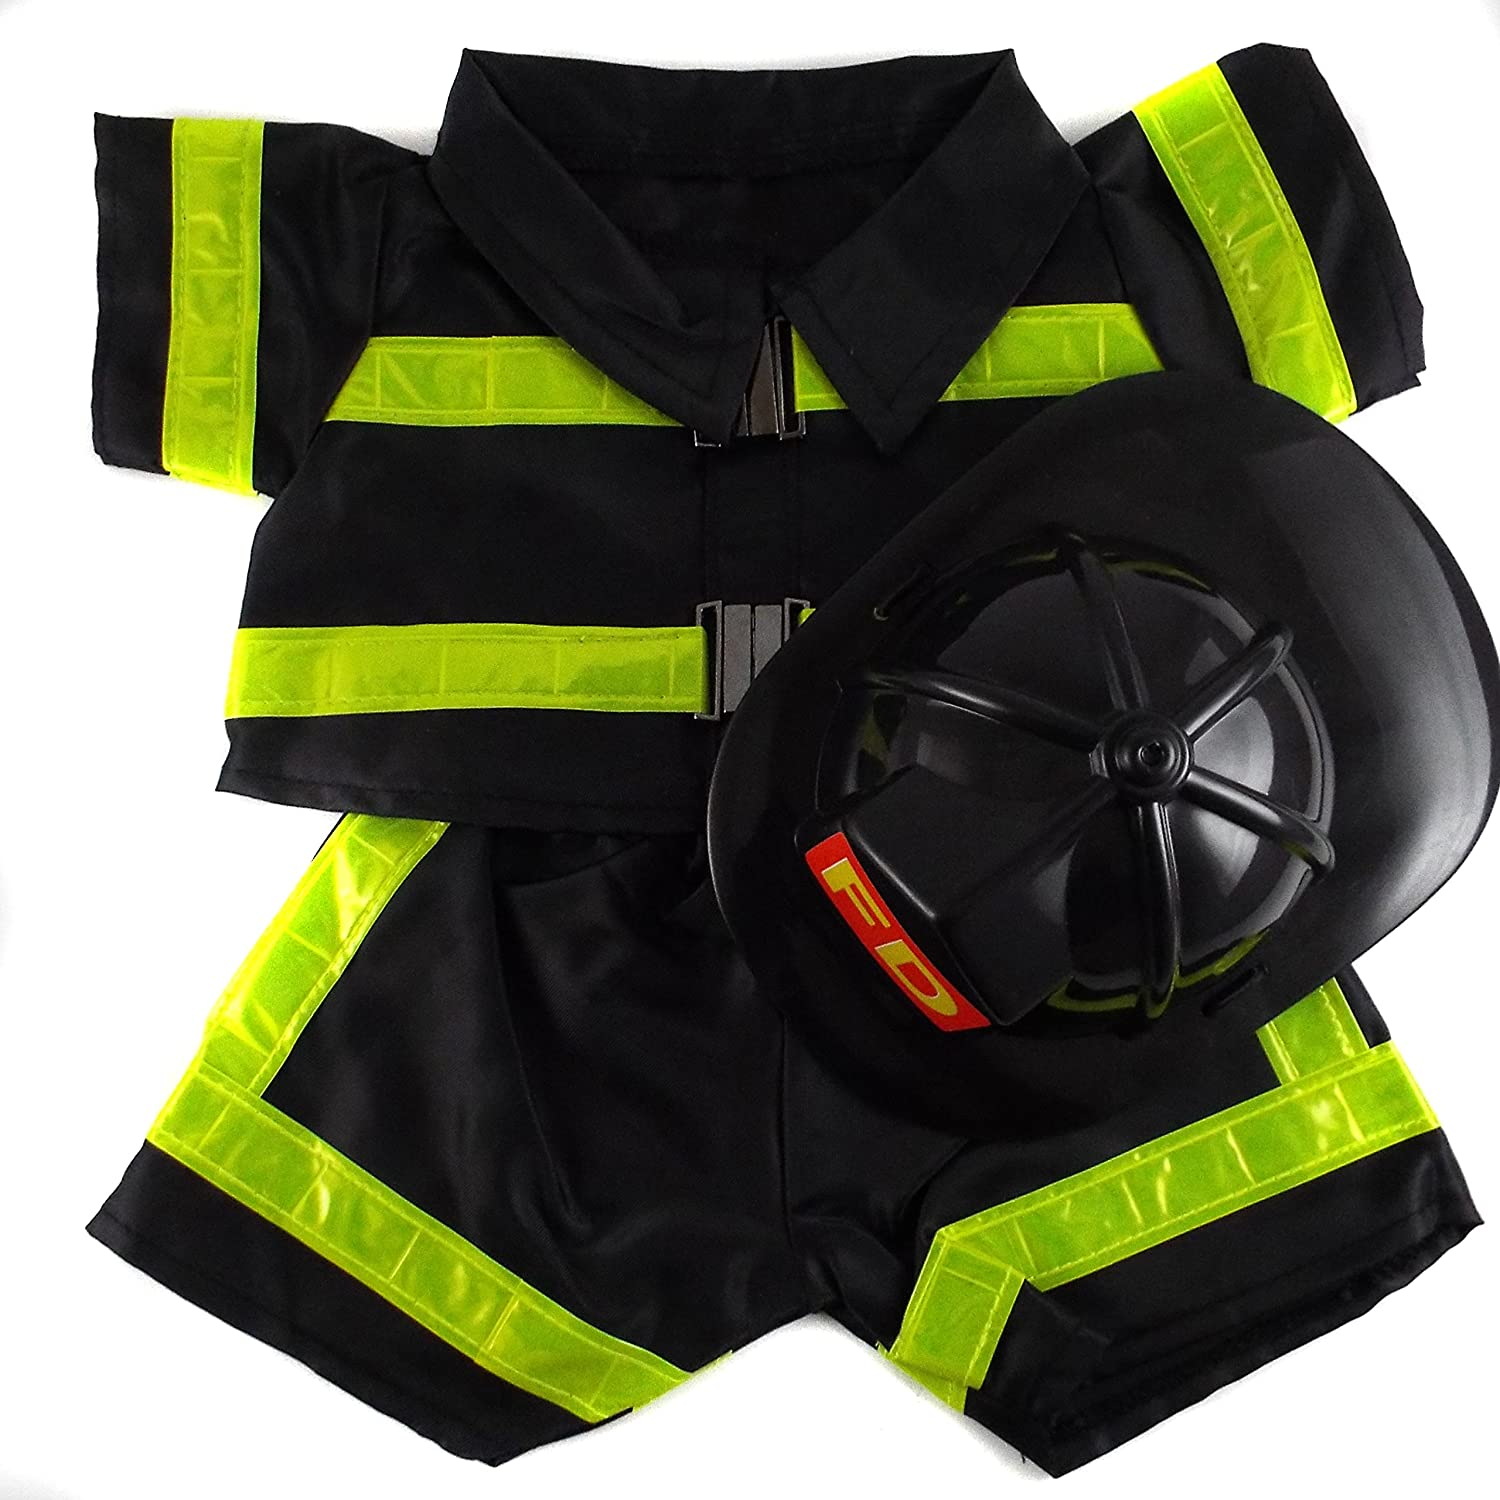 calidad fantástica Fireman Fireman Fireman Outfit Teddy Bear Clothes Fit 14  - 18  Build-a-bear, Vermont Teddy Bears, and Make Your Own Stuffed Animals by Bear Factory  Tu satisfacción es nuestro objetivo